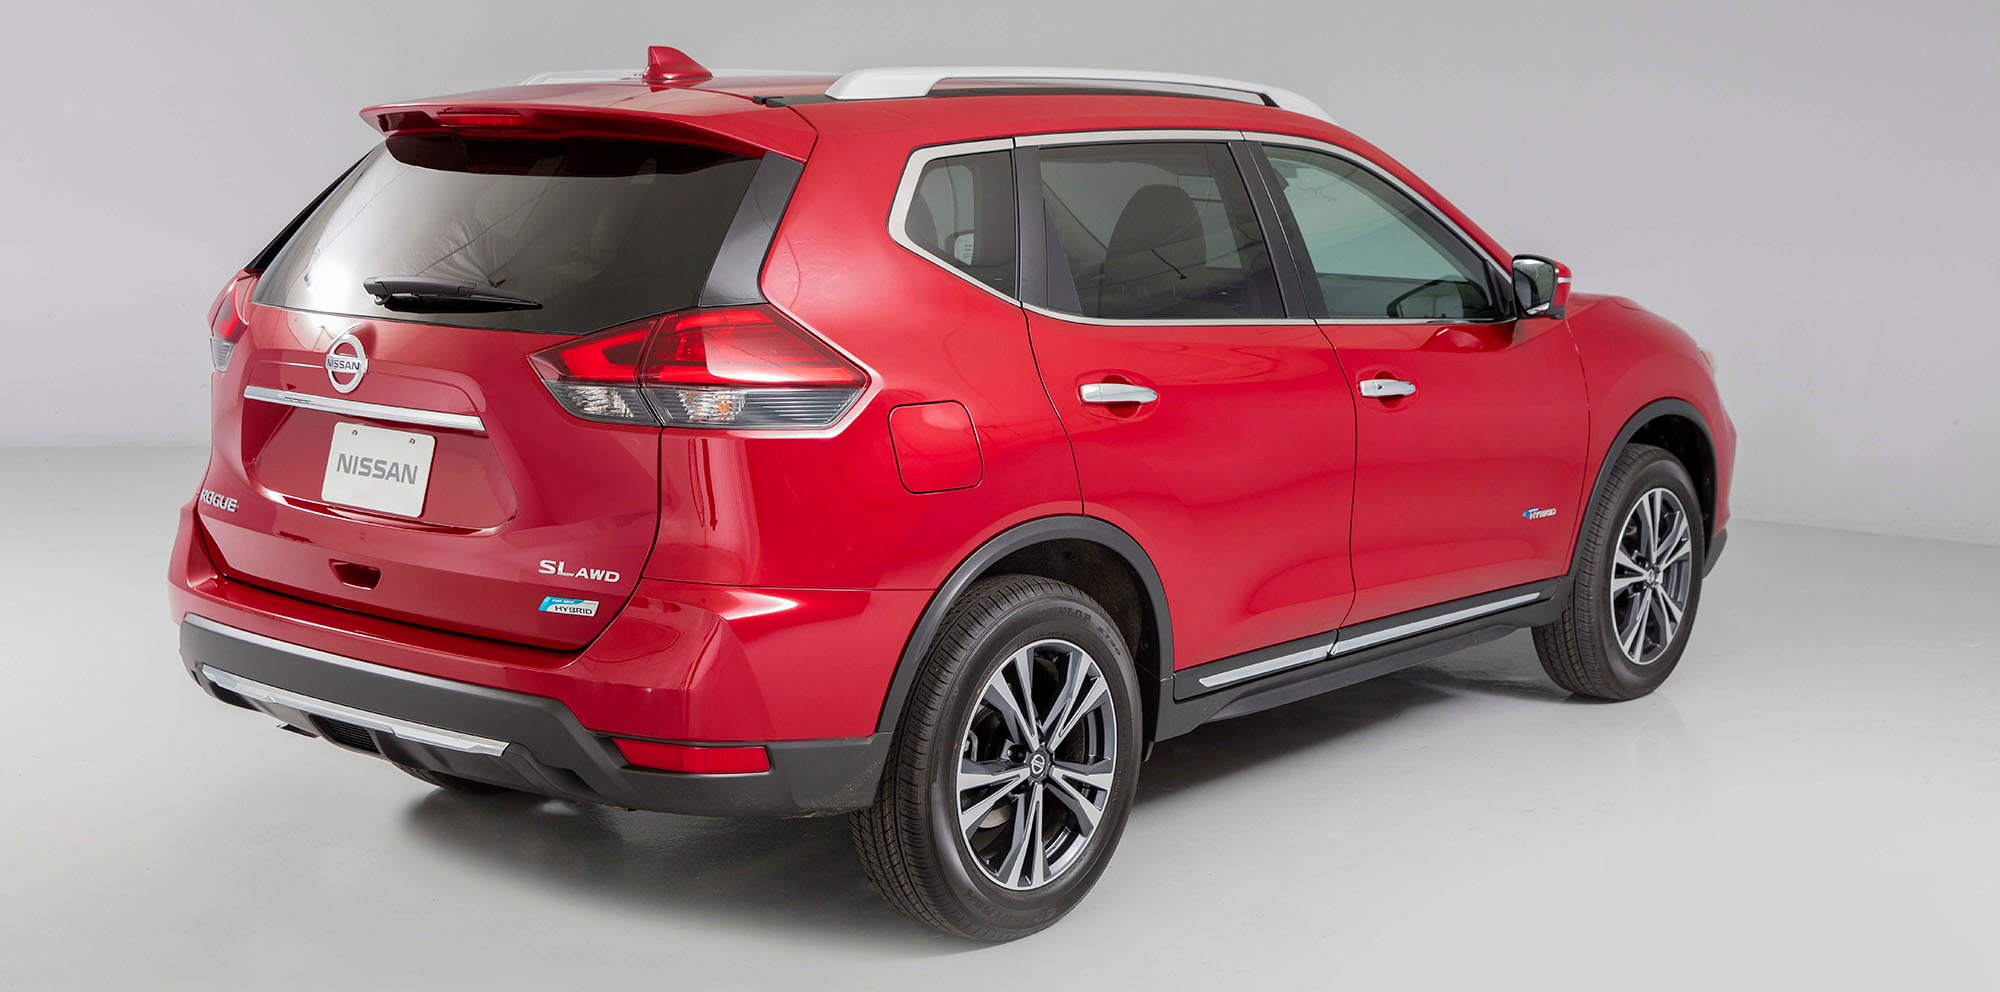 2017 nissan x trail facelift revealed for america indicative of australian look update. Black Bedroom Furniture Sets. Home Design Ideas